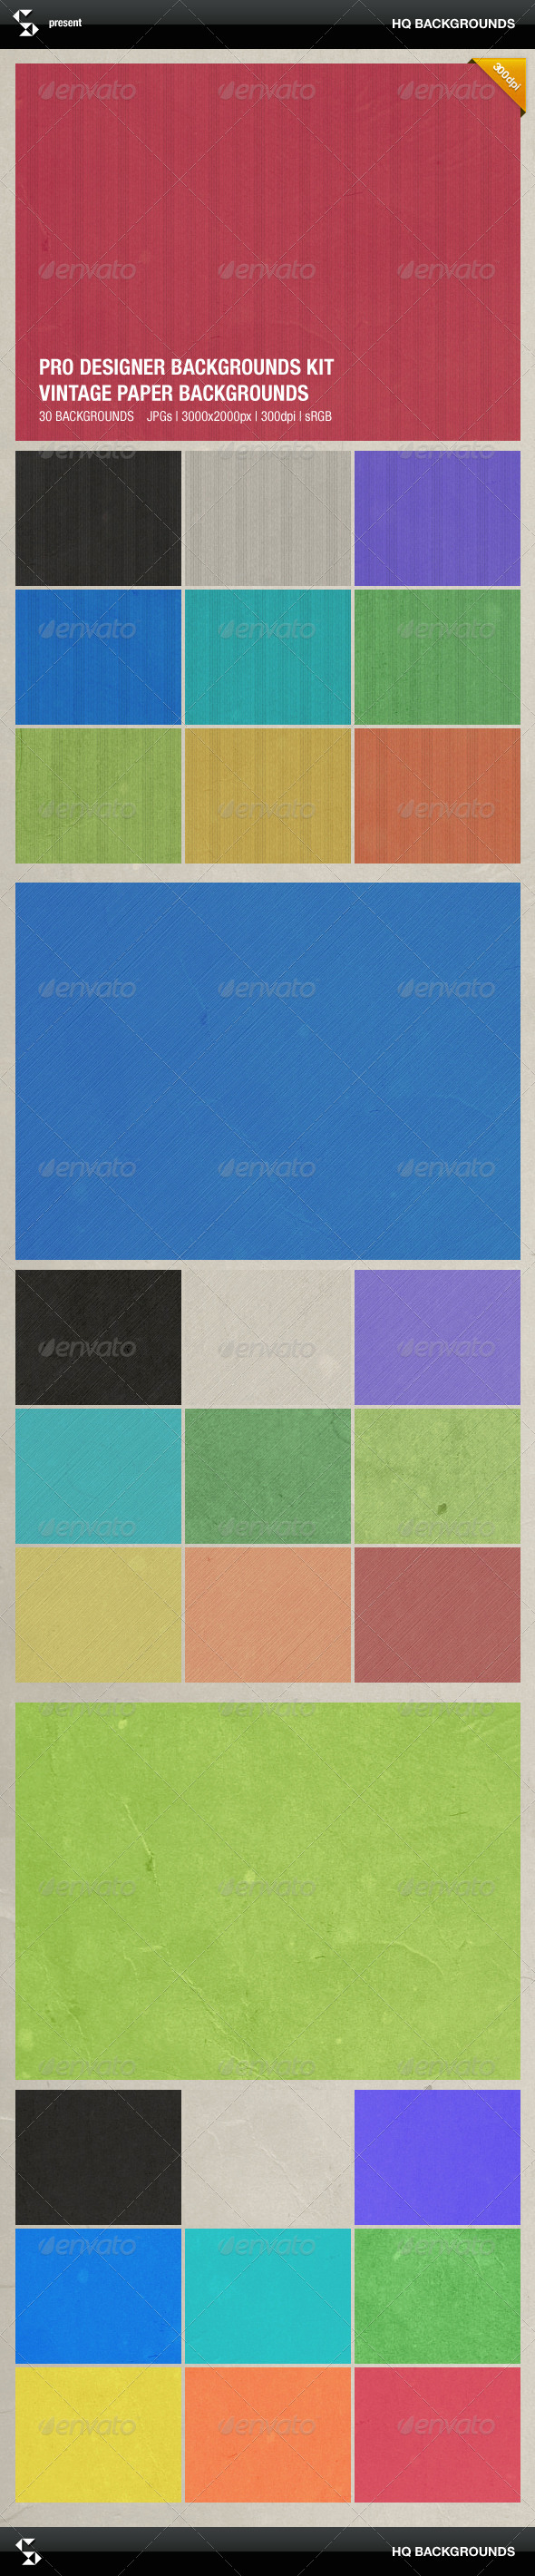 GraphicRiver Vintage Grunge Paper Backgrounds 8390166